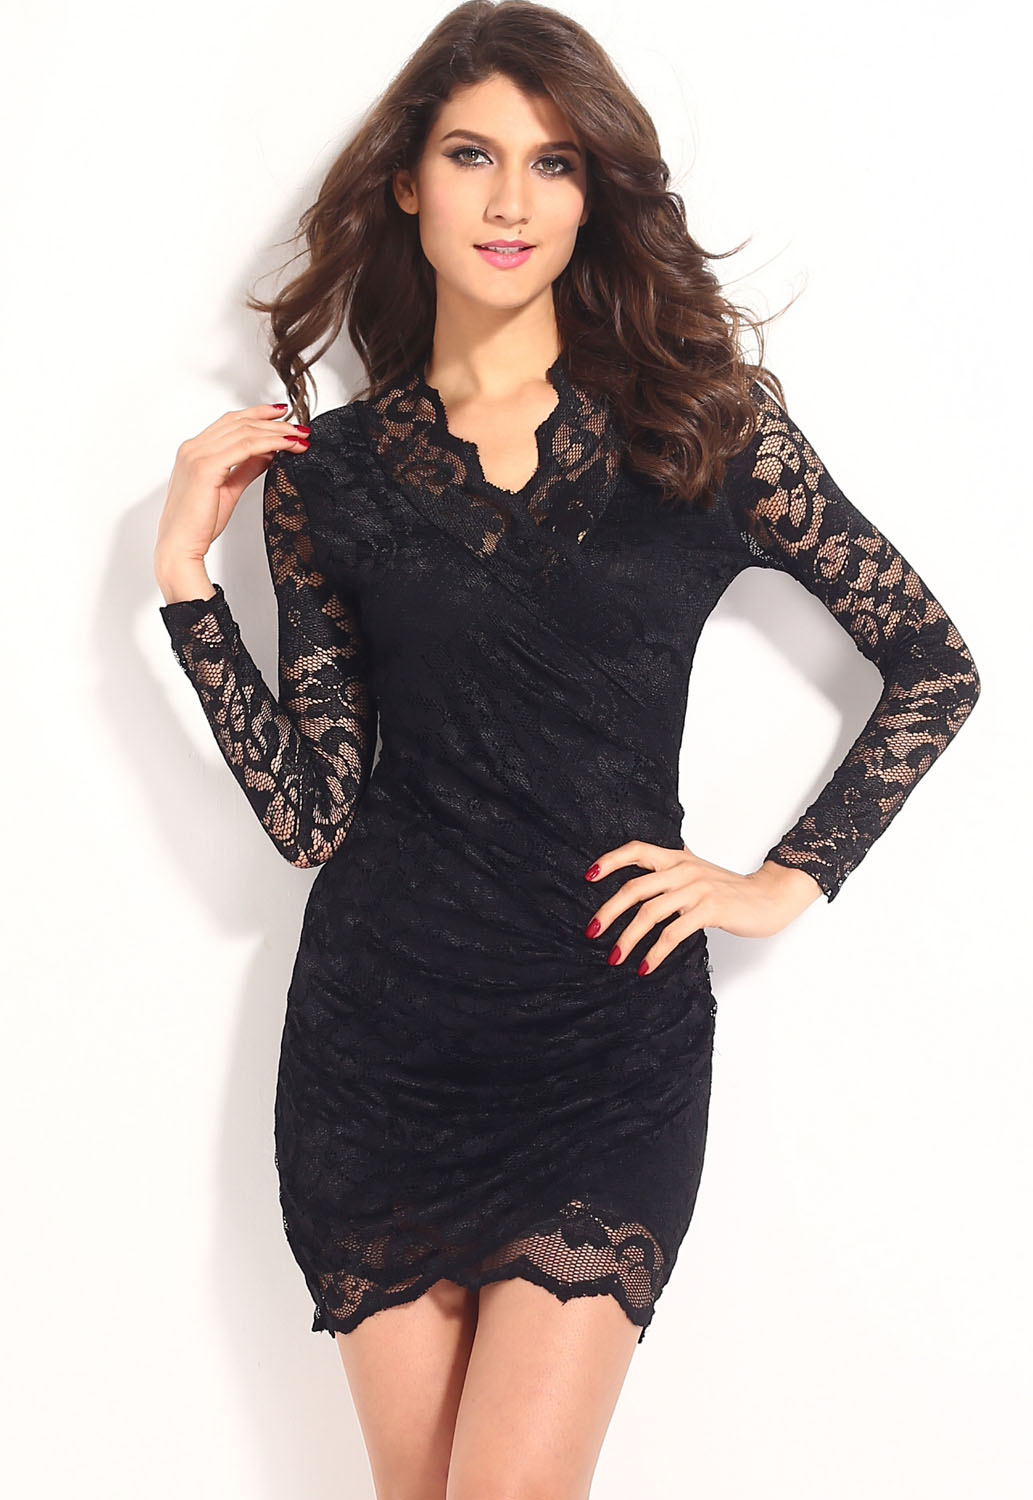 Black Lace Scalloped Dress : Beautiful And Elegant